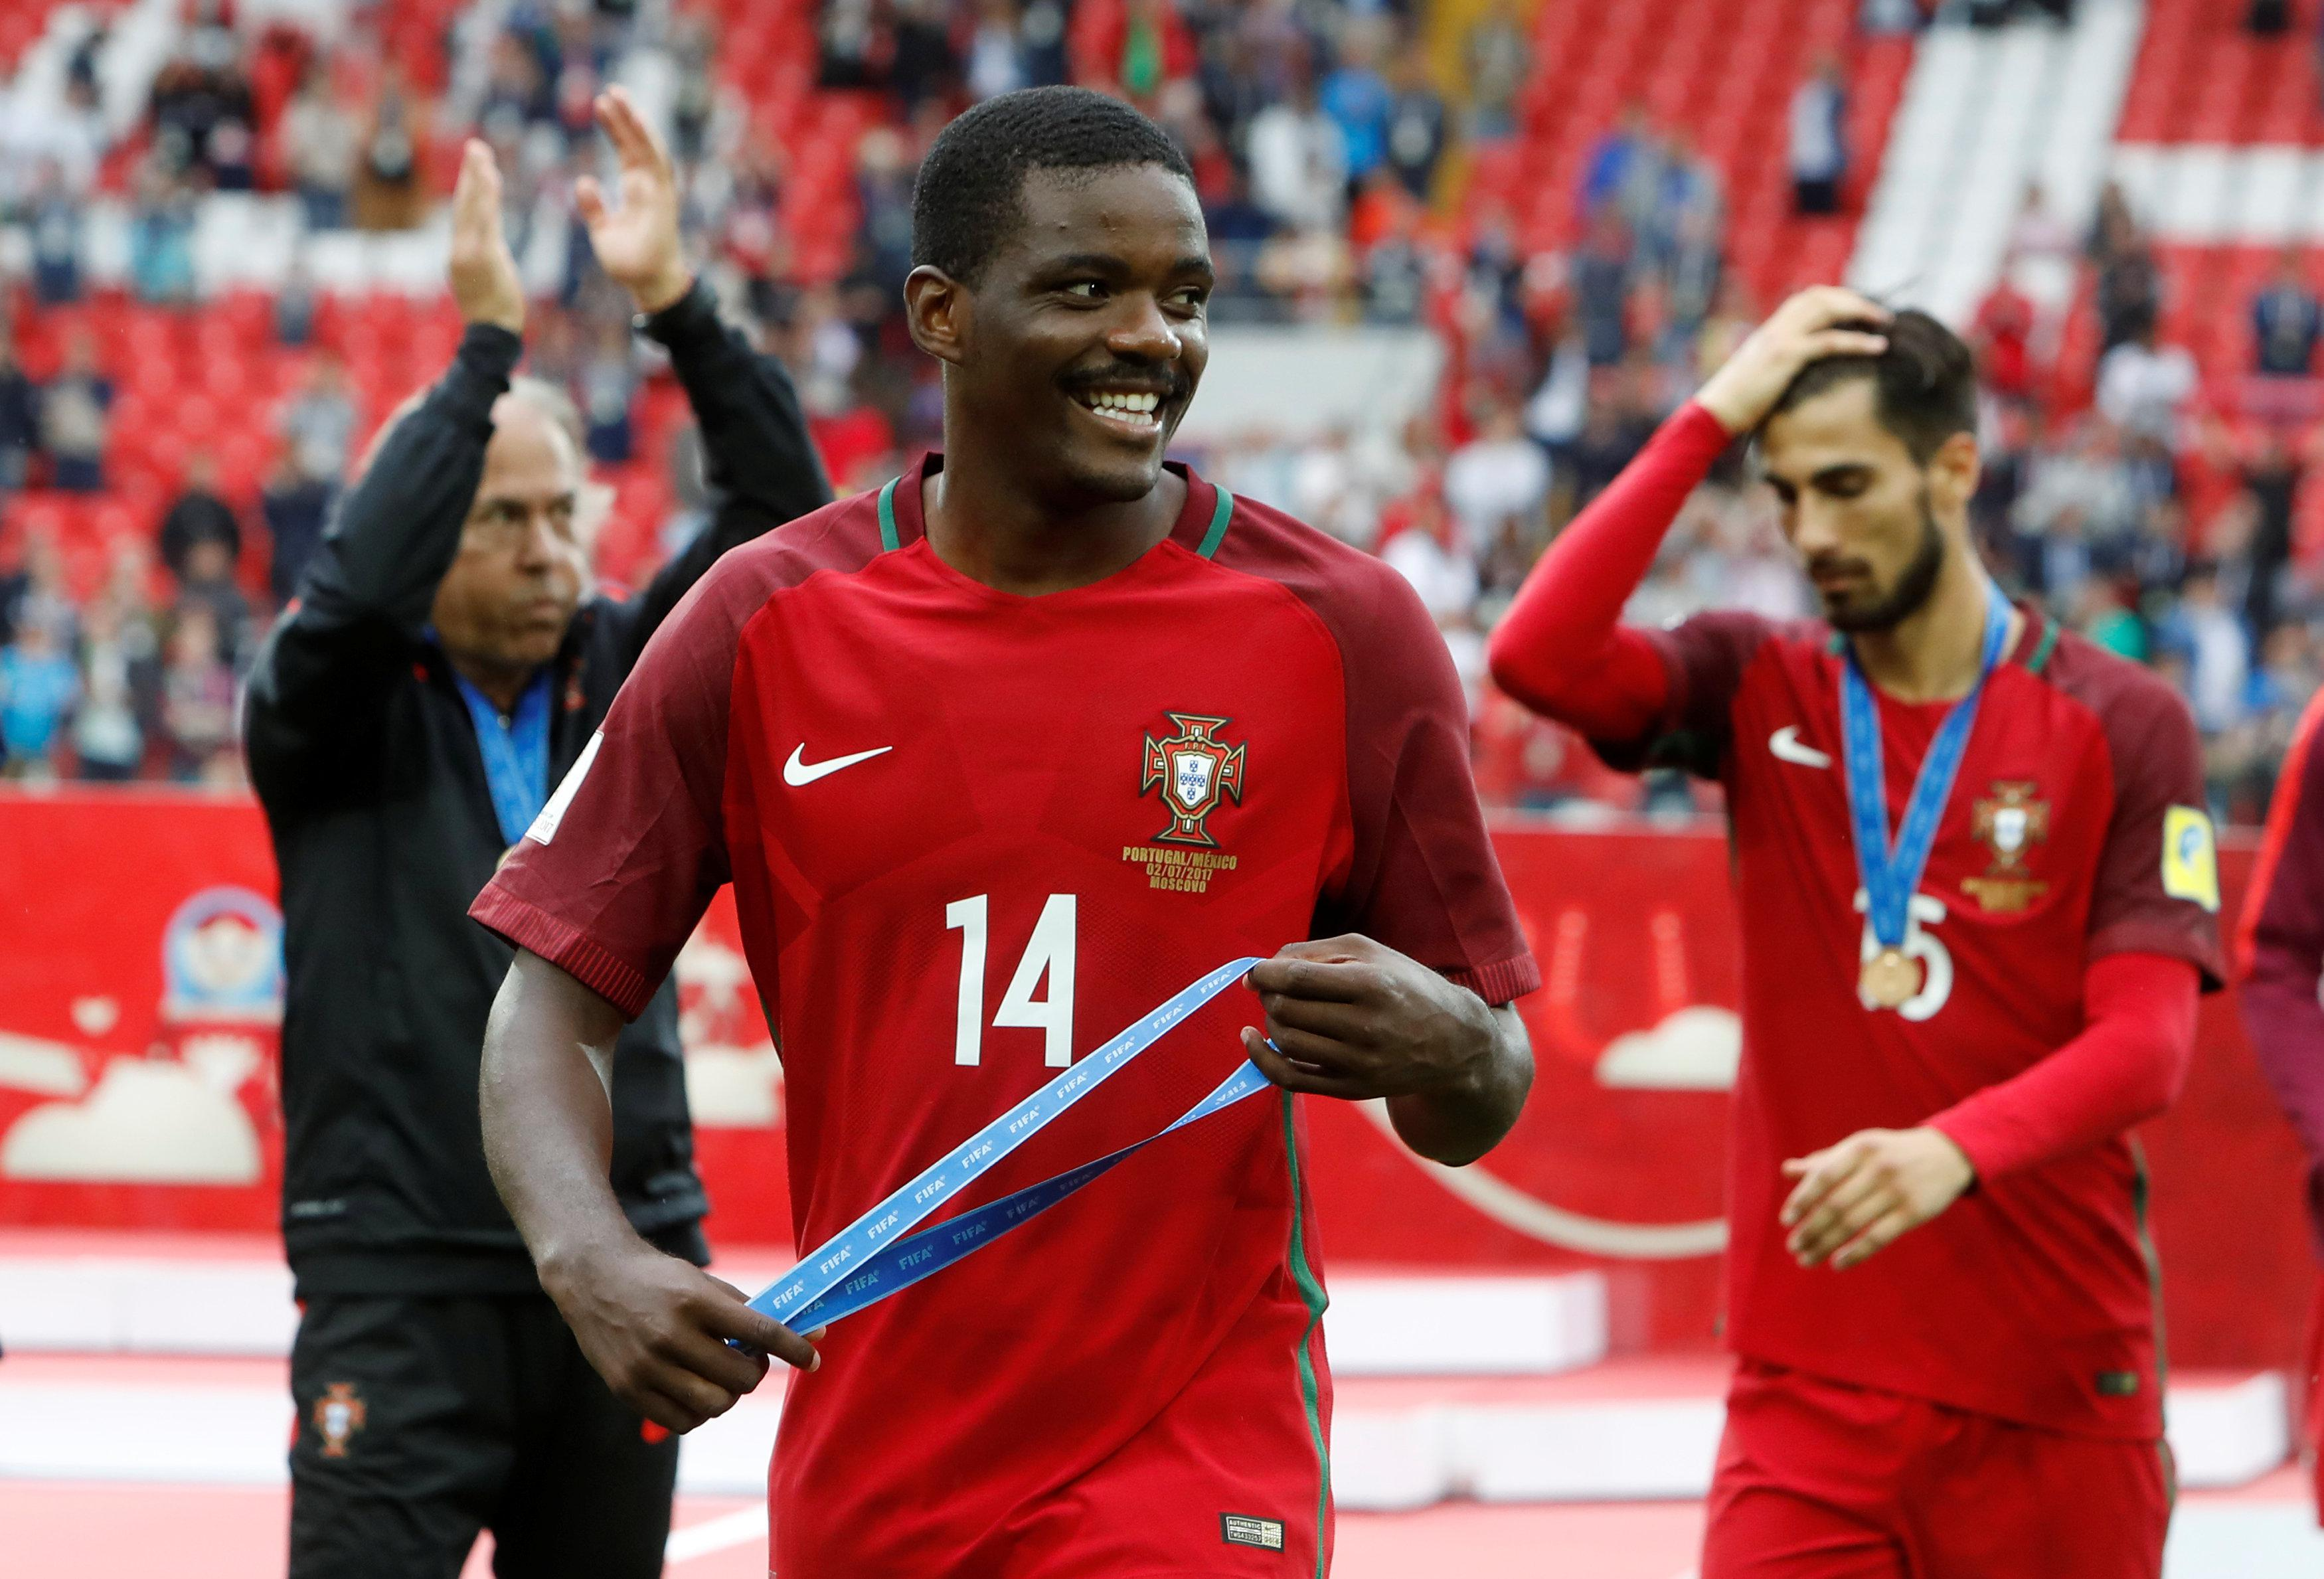 He played a key role in Portugal's Euro 2016 win